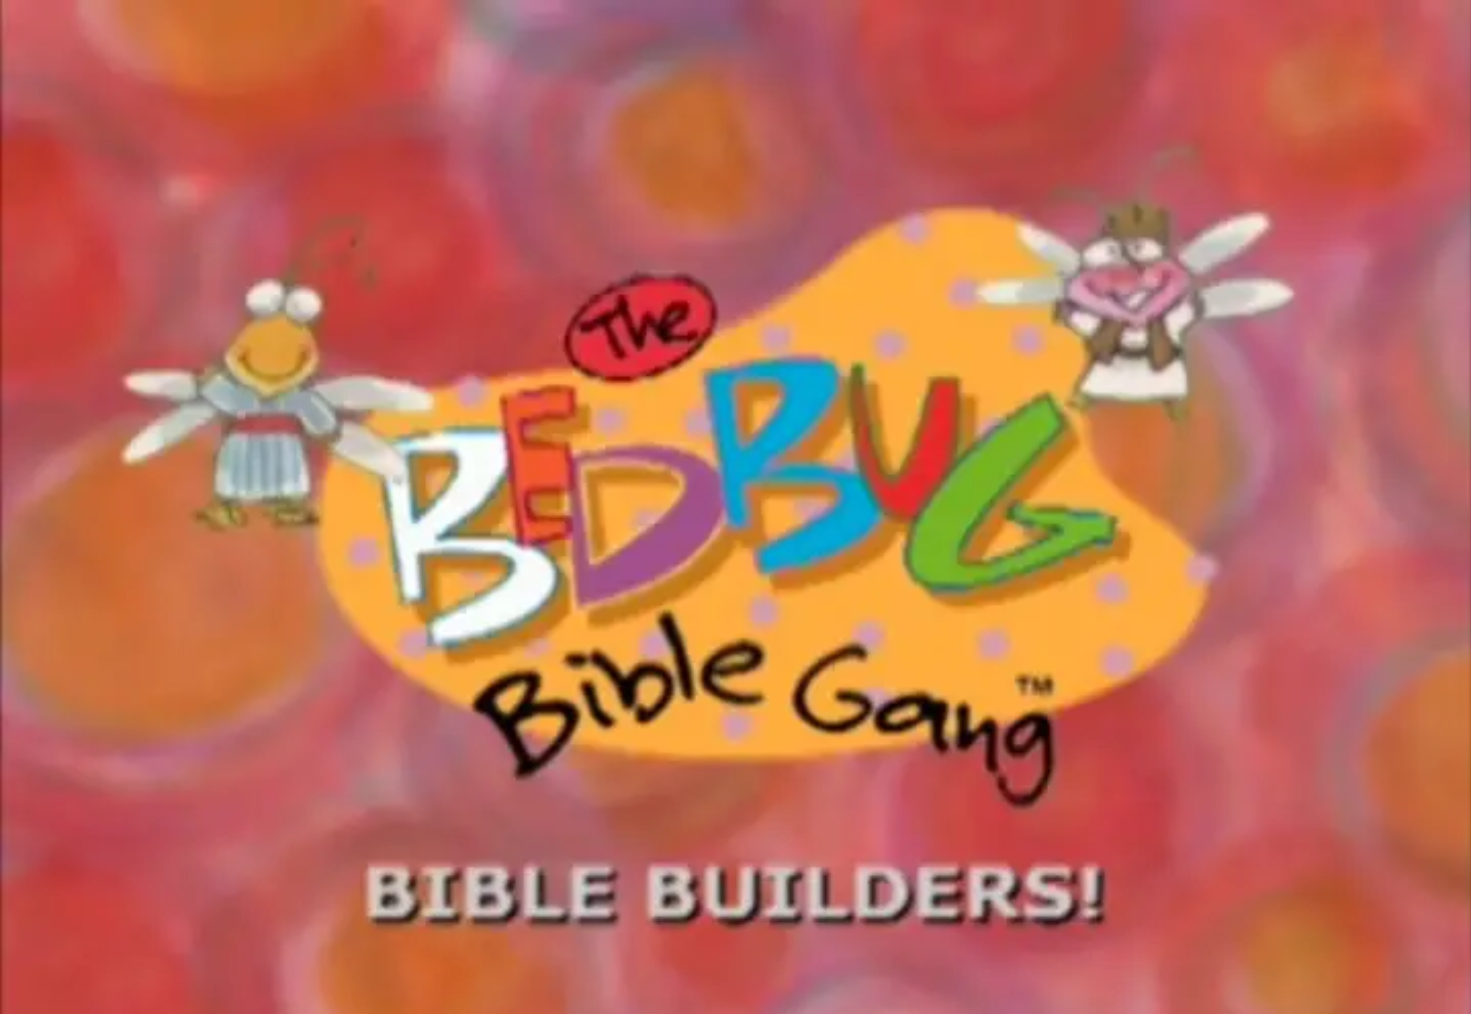 Bedbug Bible Gang - Bible Builders!